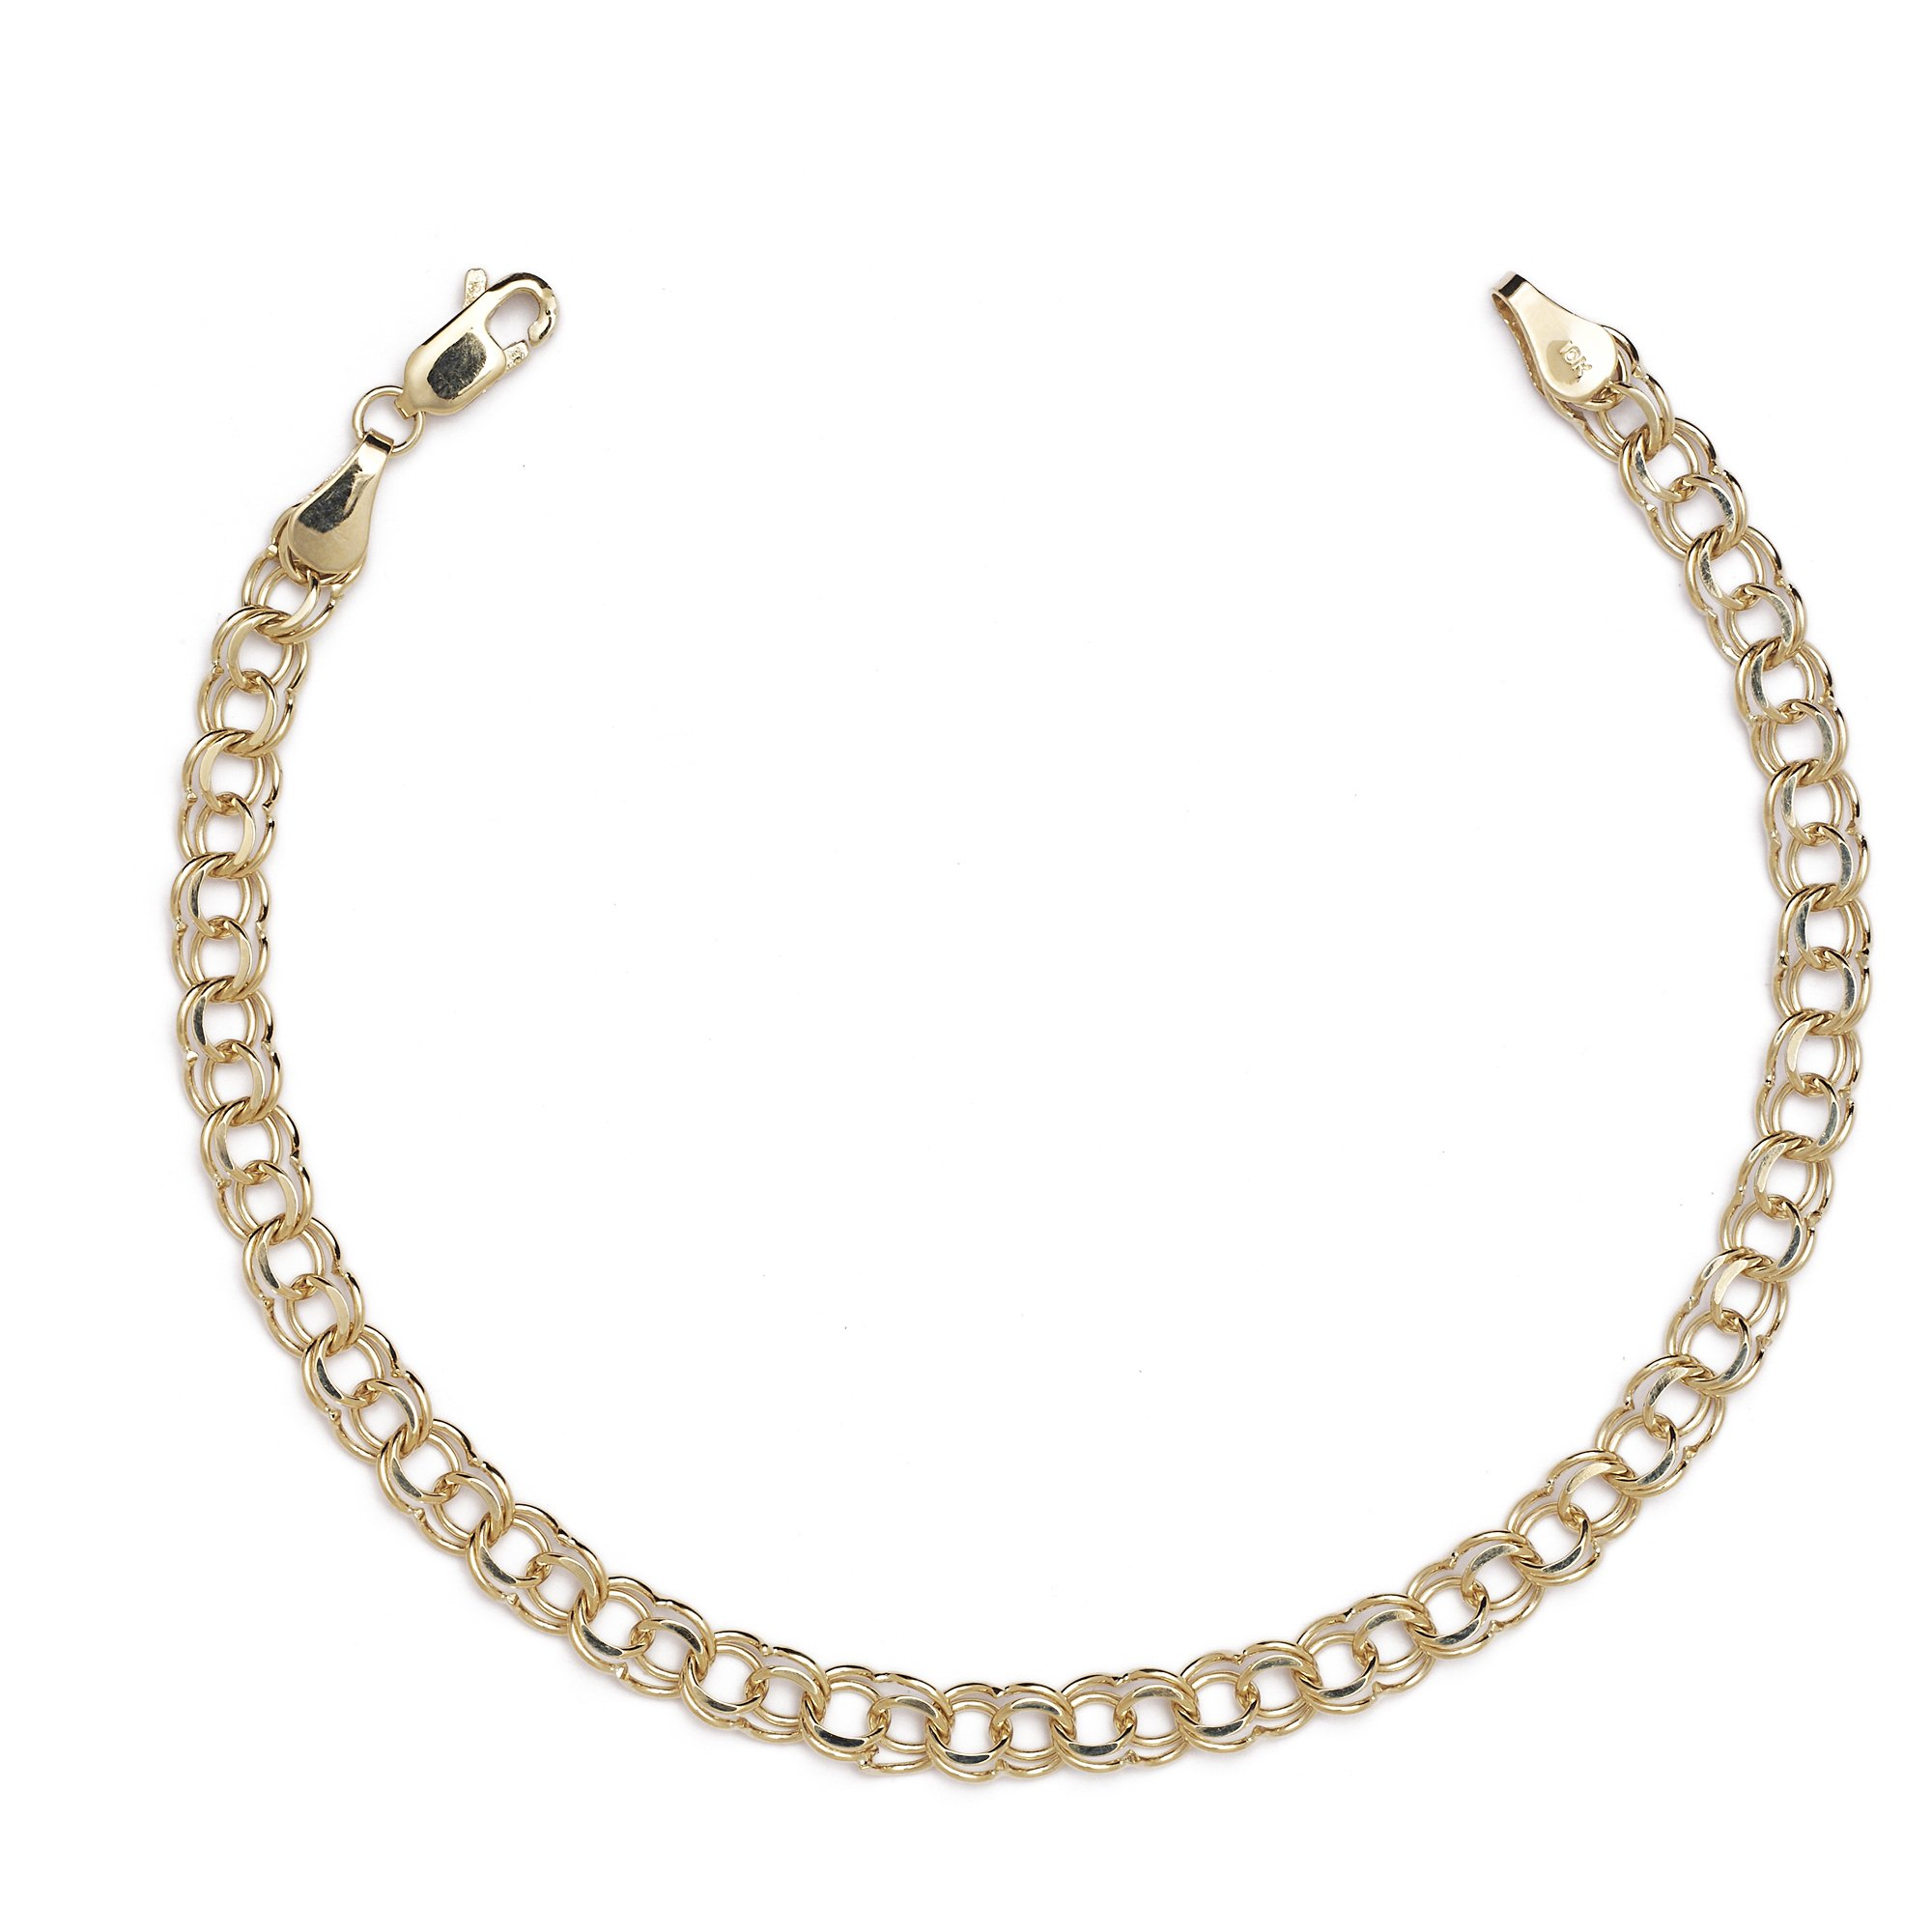 Floreo 8 Inch 10k Yellow Gold High Polished Solid Double Link Charm Bracelet for Women and Girls (0.2'')